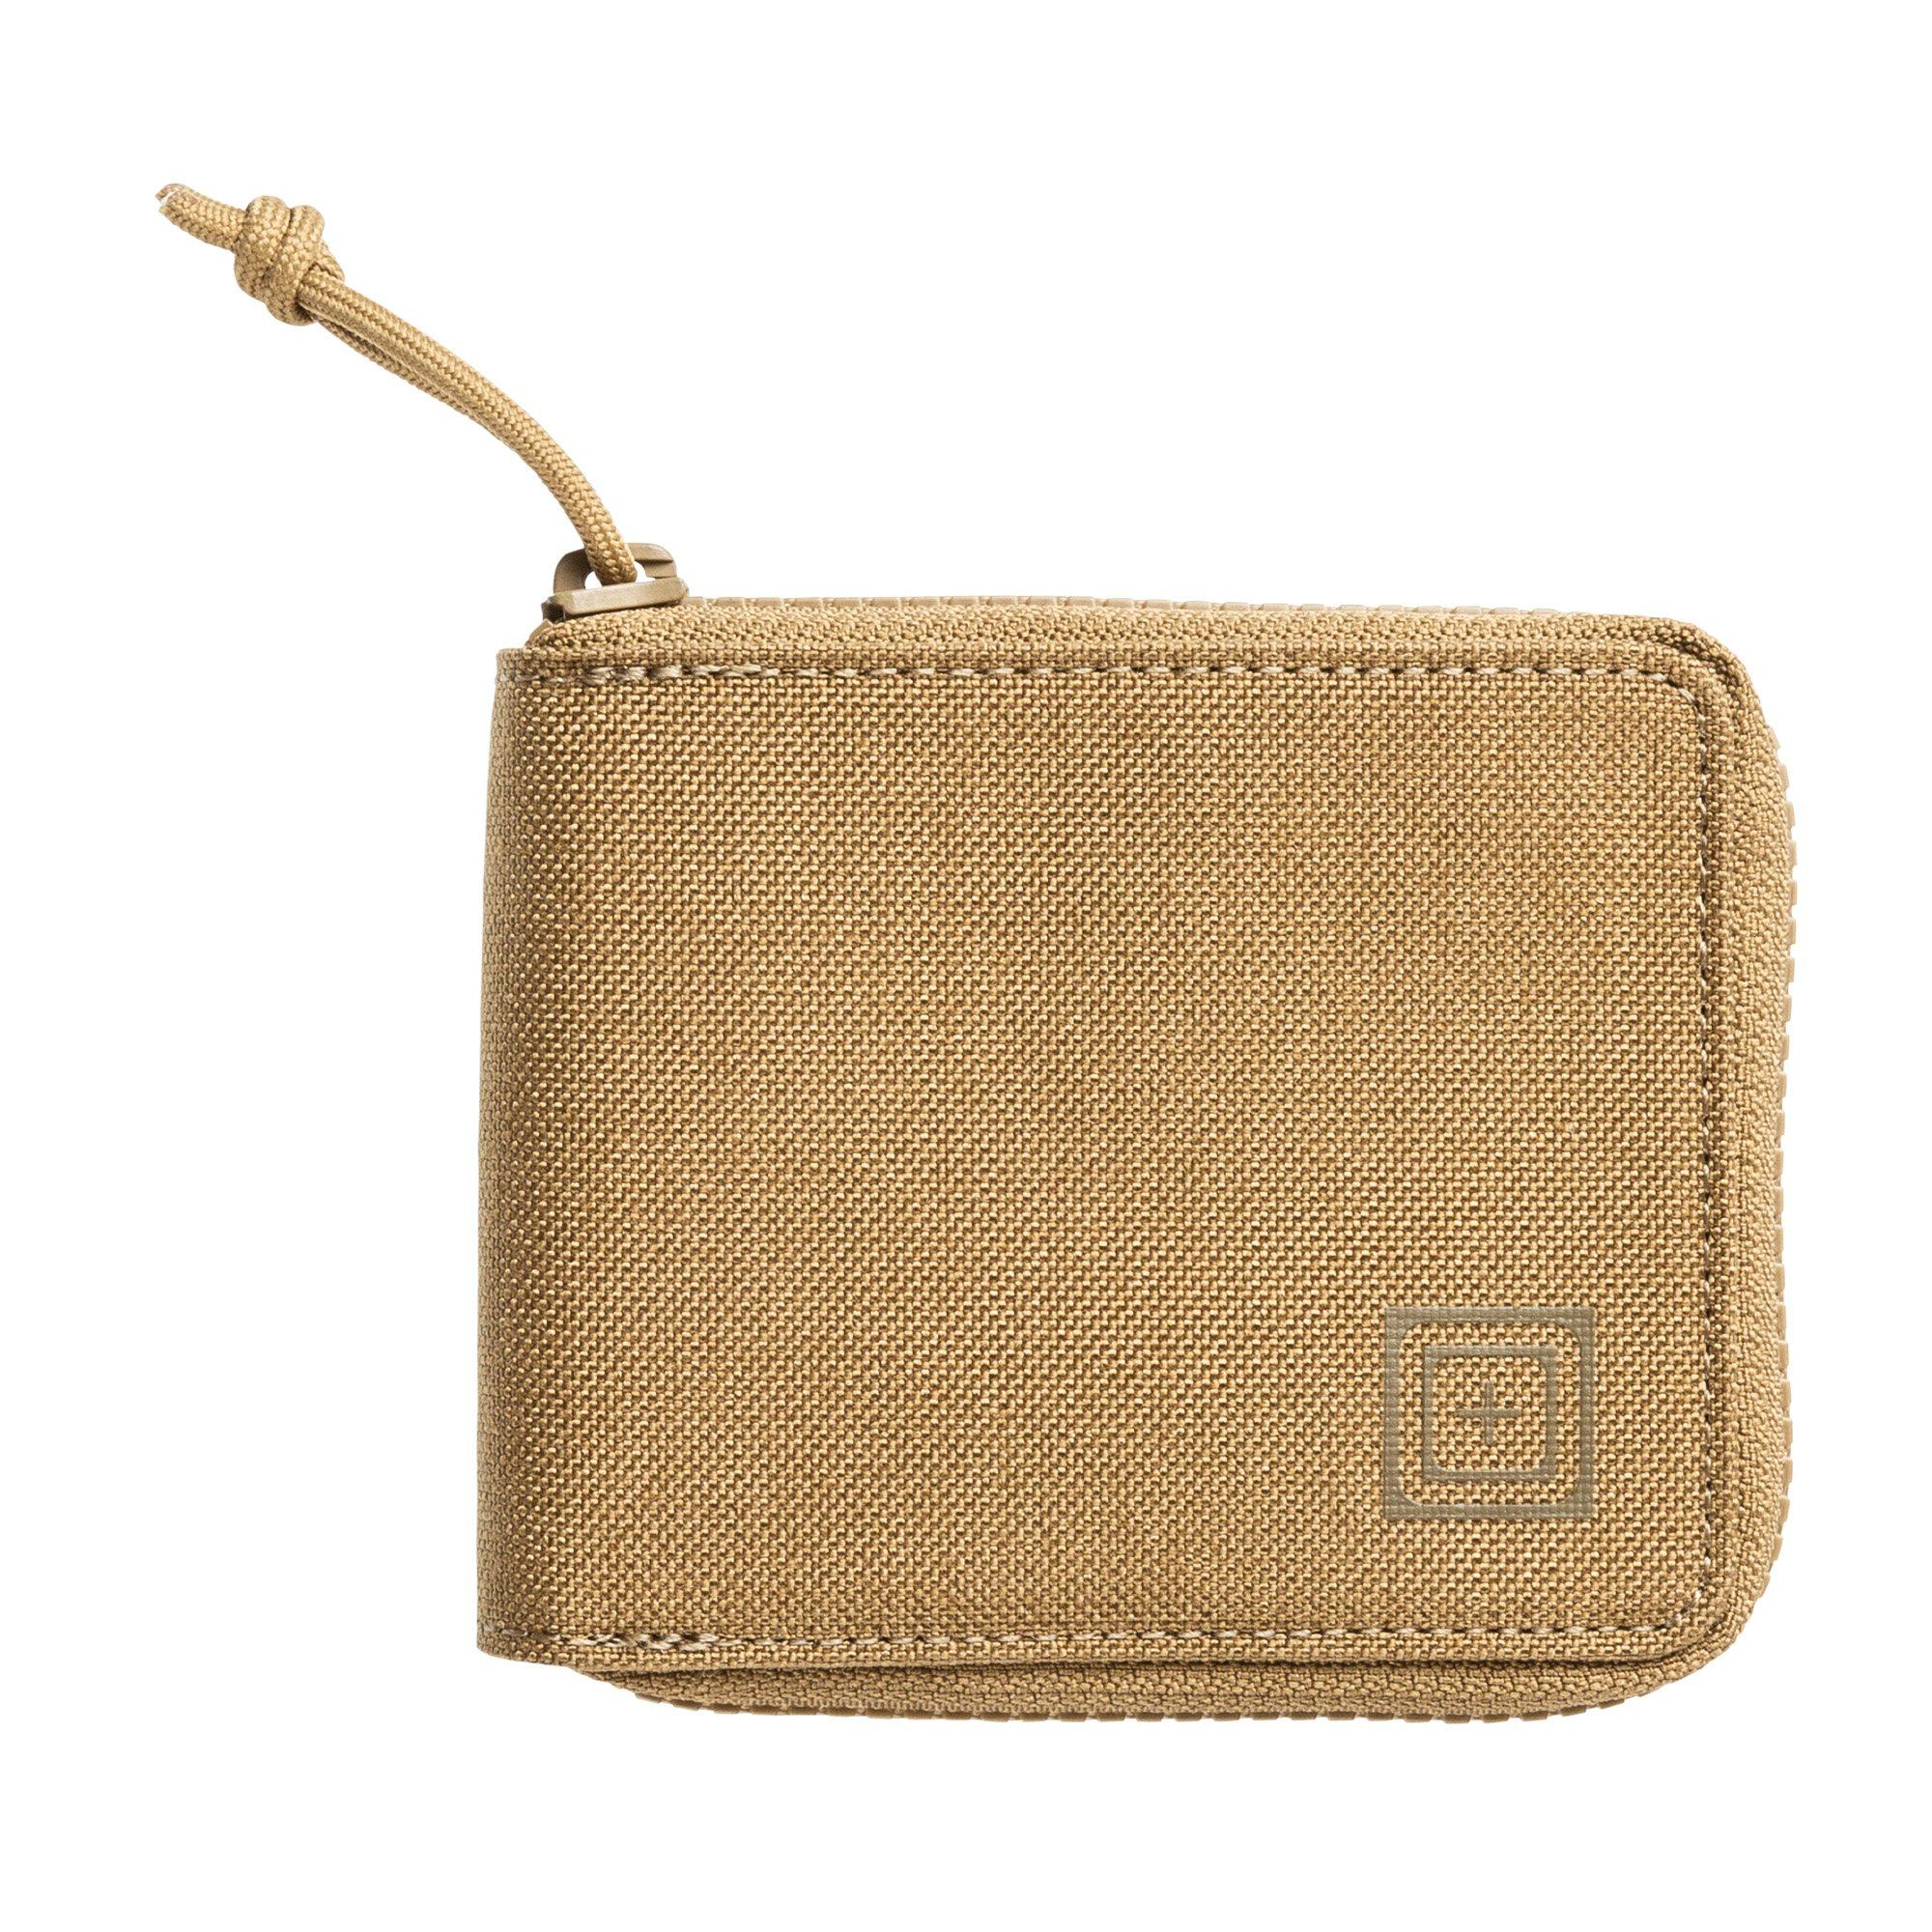 LOCK DOWN WALLET - Kangaroo